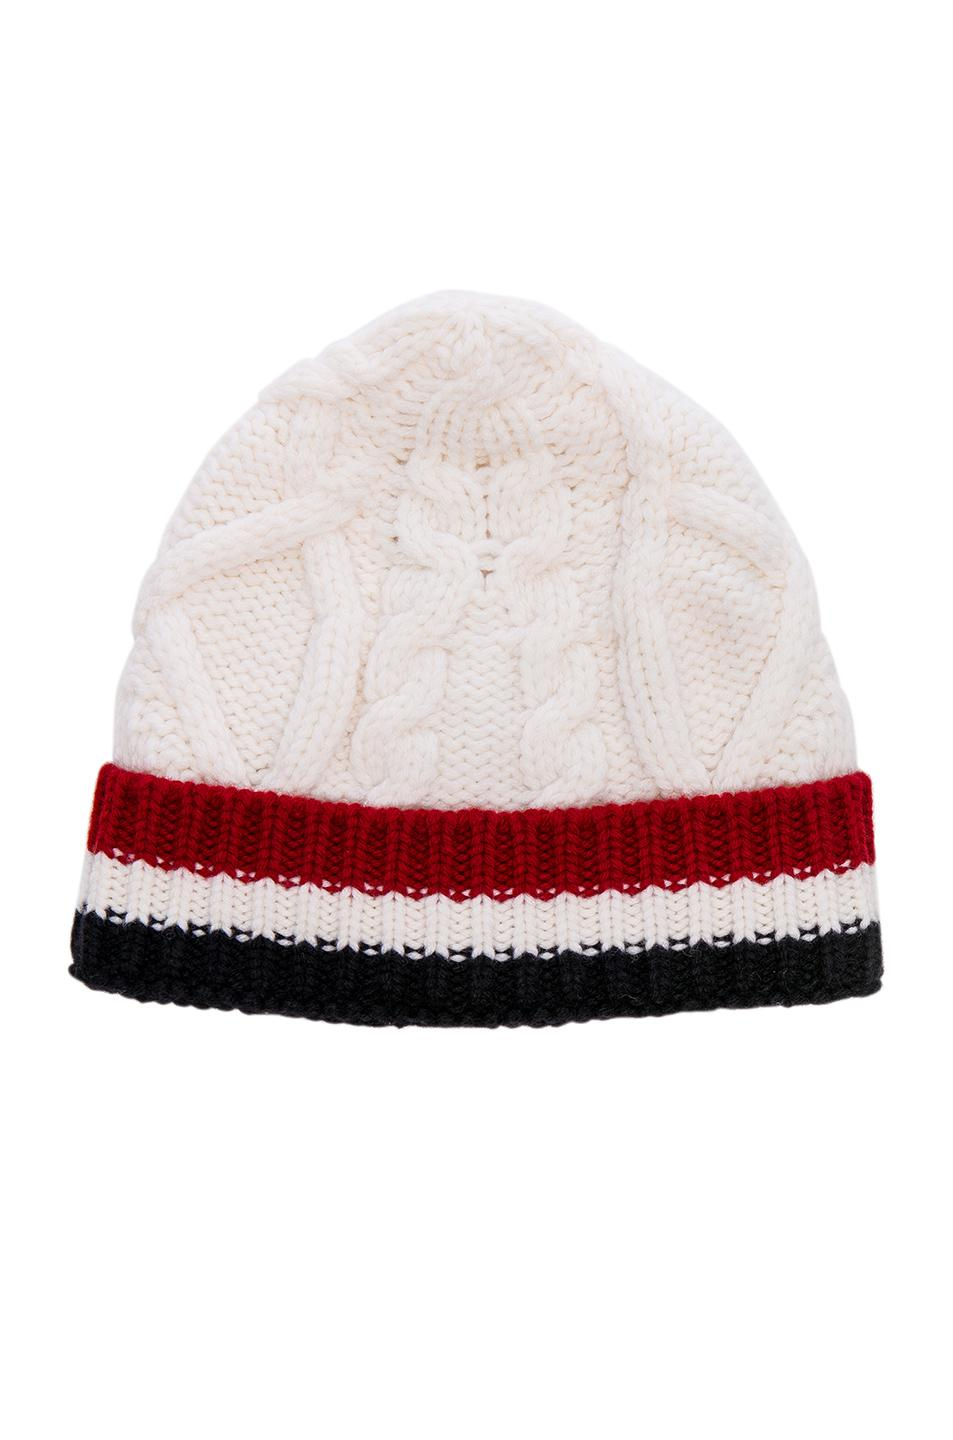 7ad3cff4f0e Thom Browne Aran Cable Hat in White - Lyst